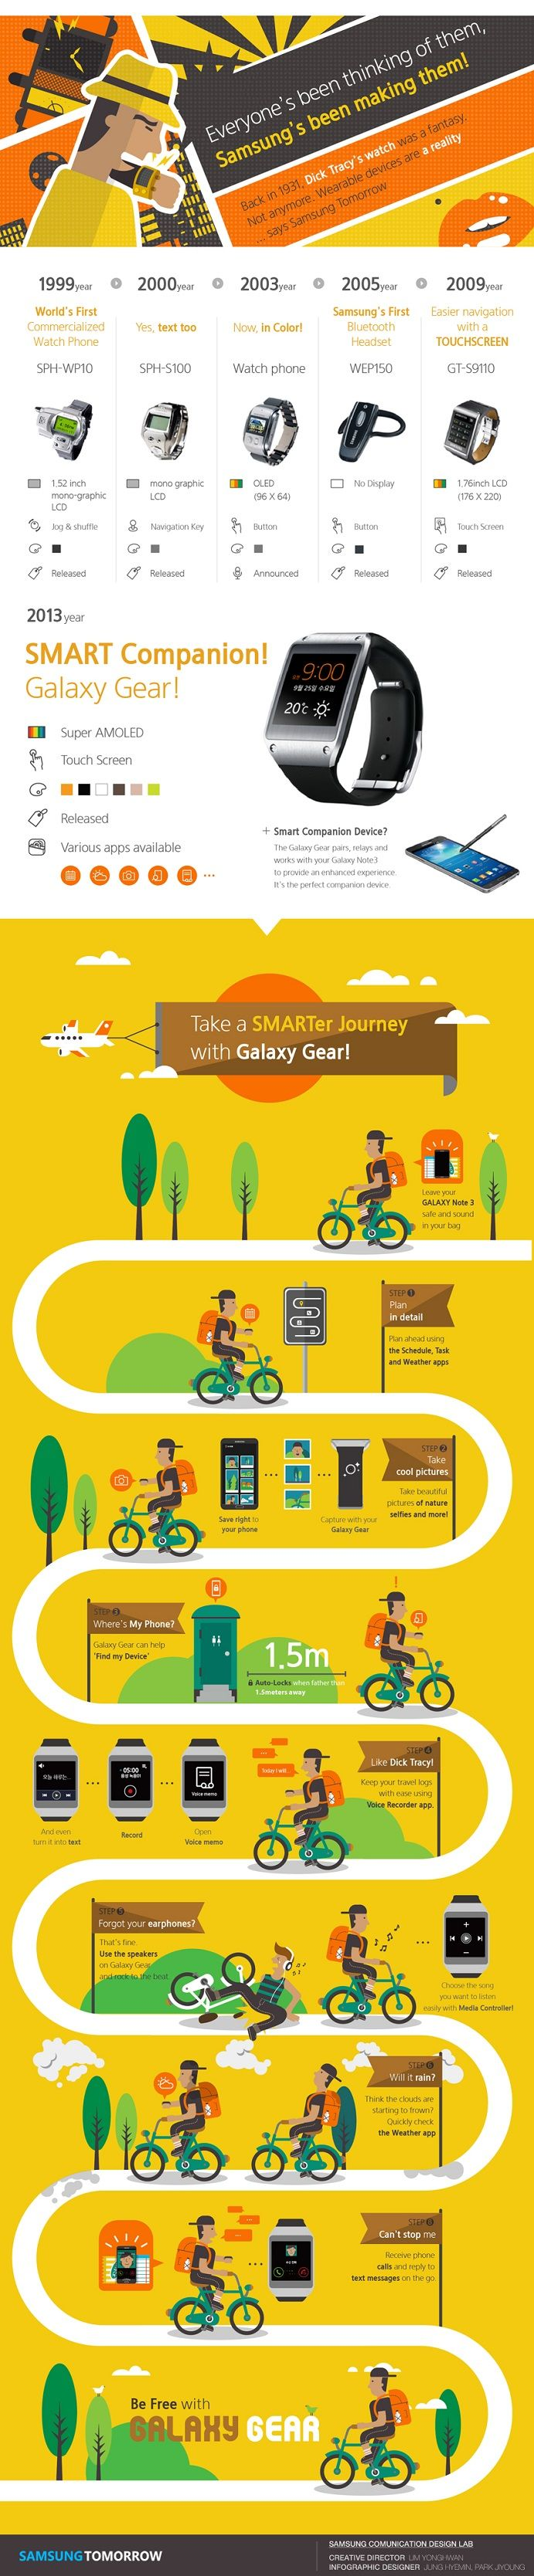 [Infographic] Samsung takes a look at its achievements in ...